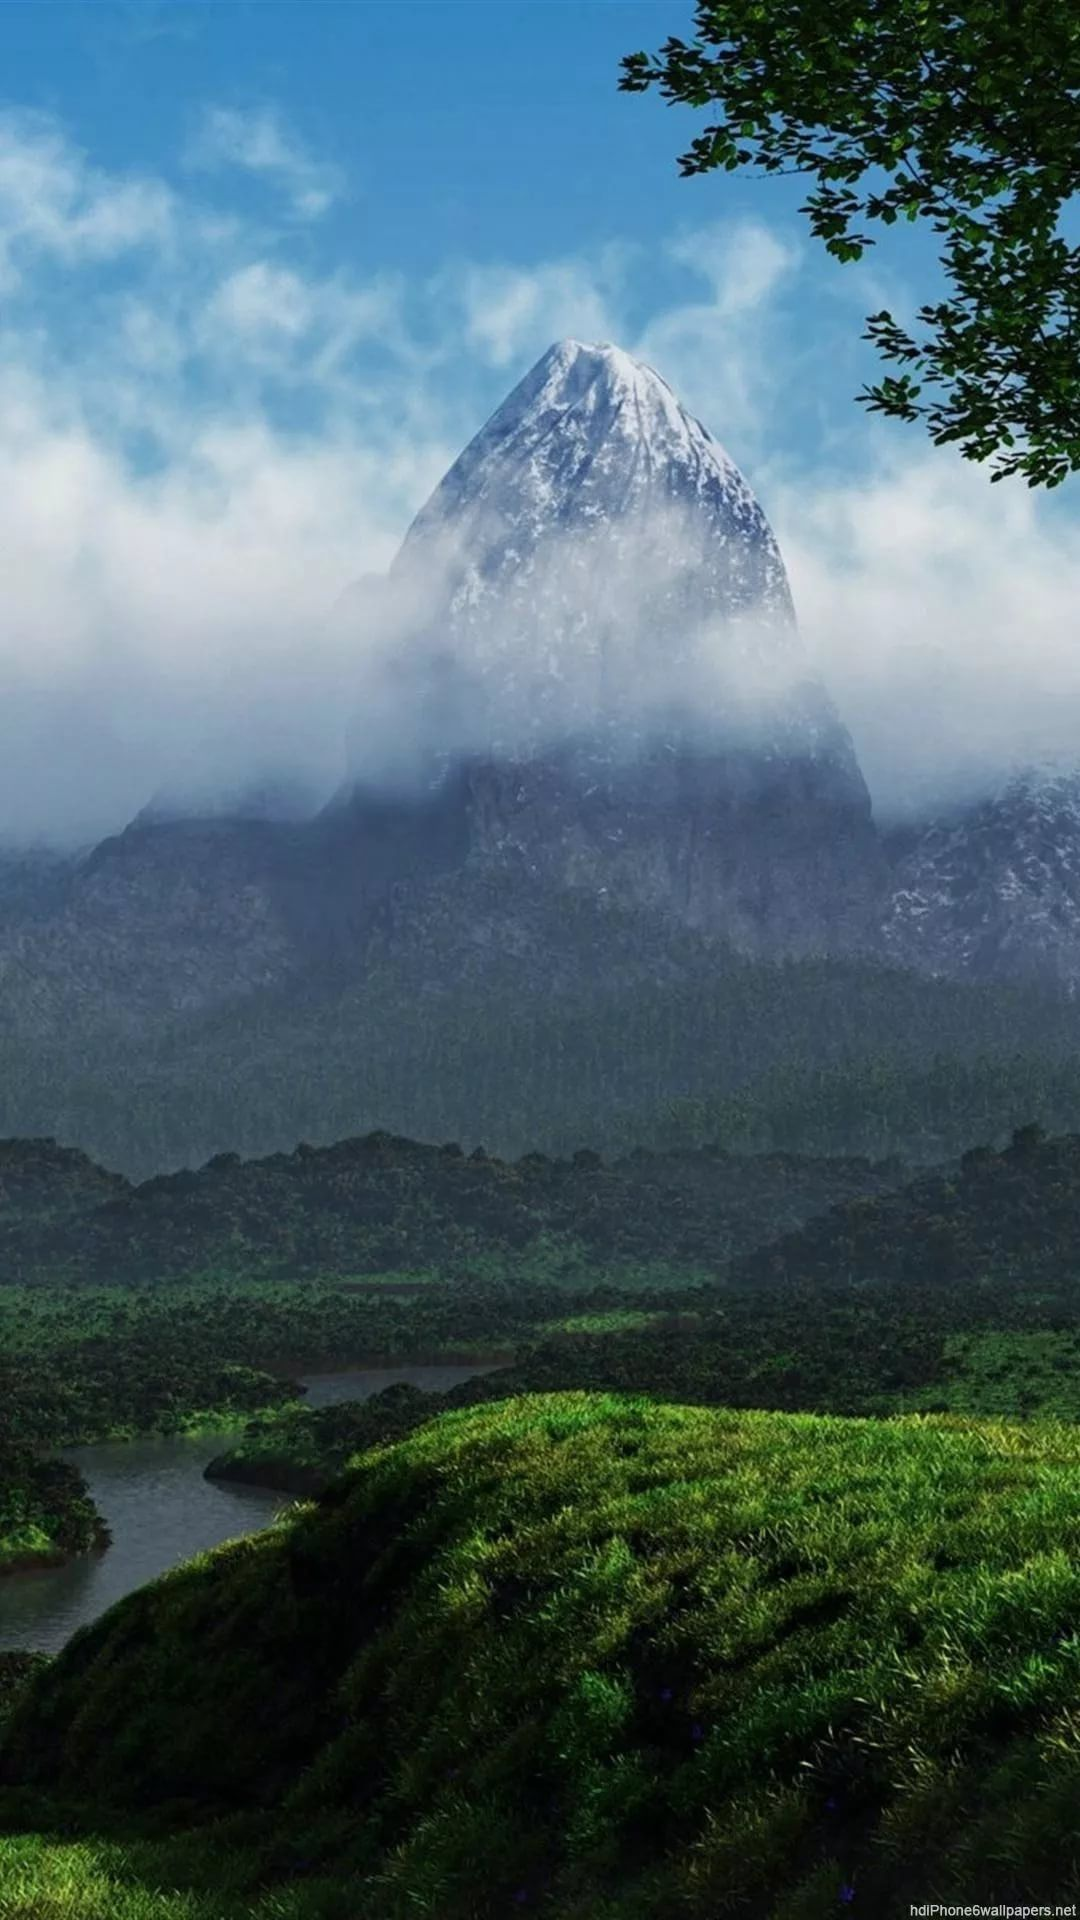 Nature Hd wallpaper for iPhone